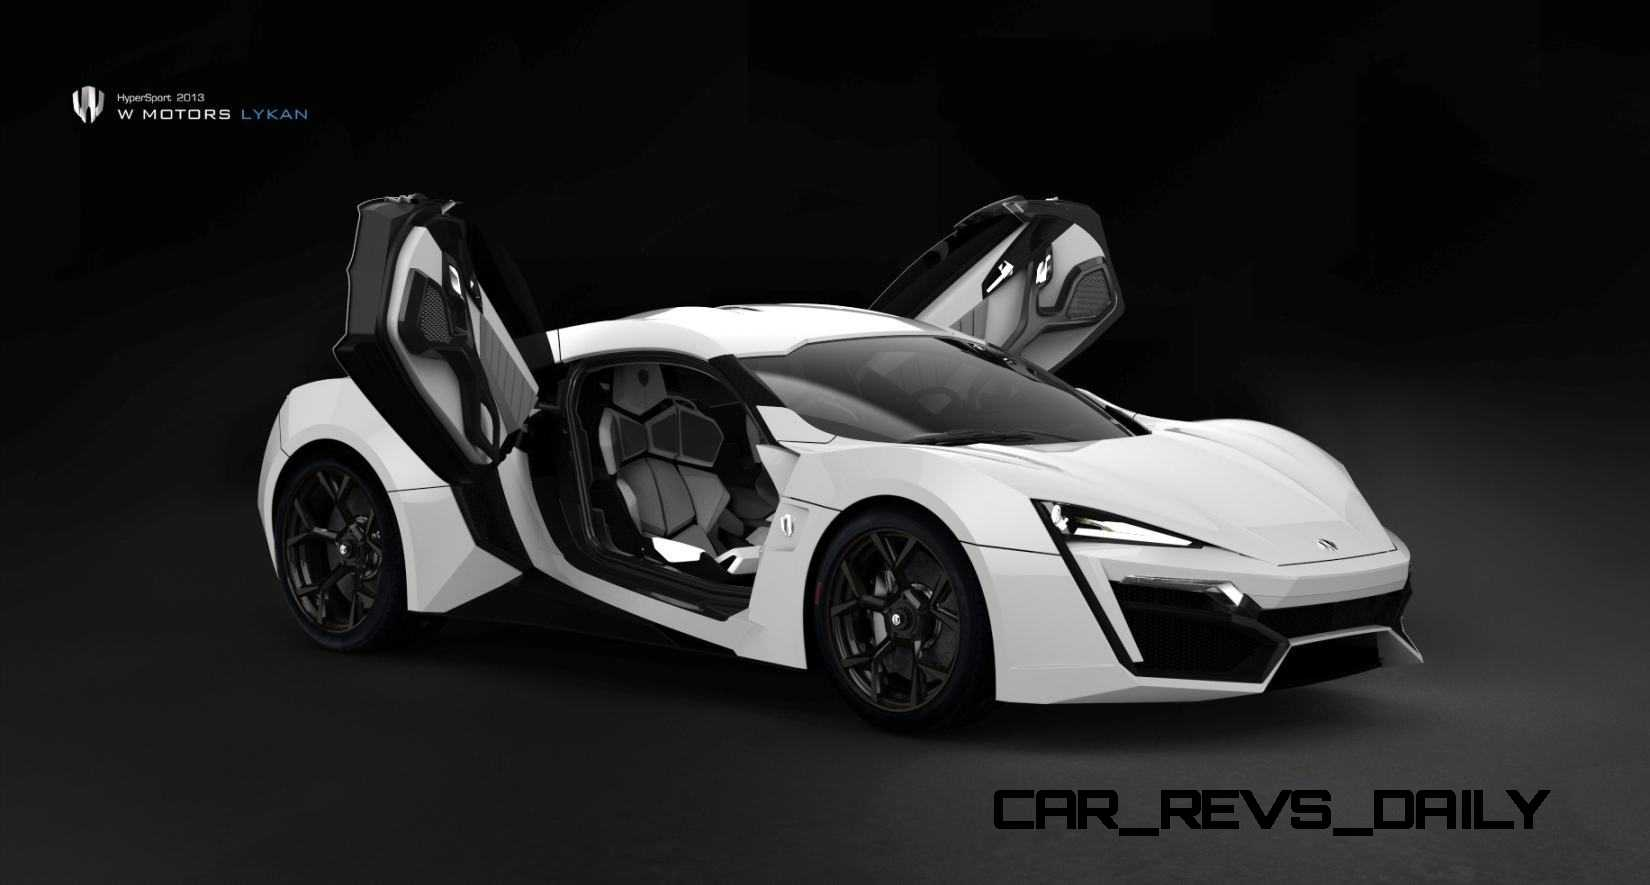 2014 W Motors Lykan Hypersport in 40 Amazing New Wallpapers